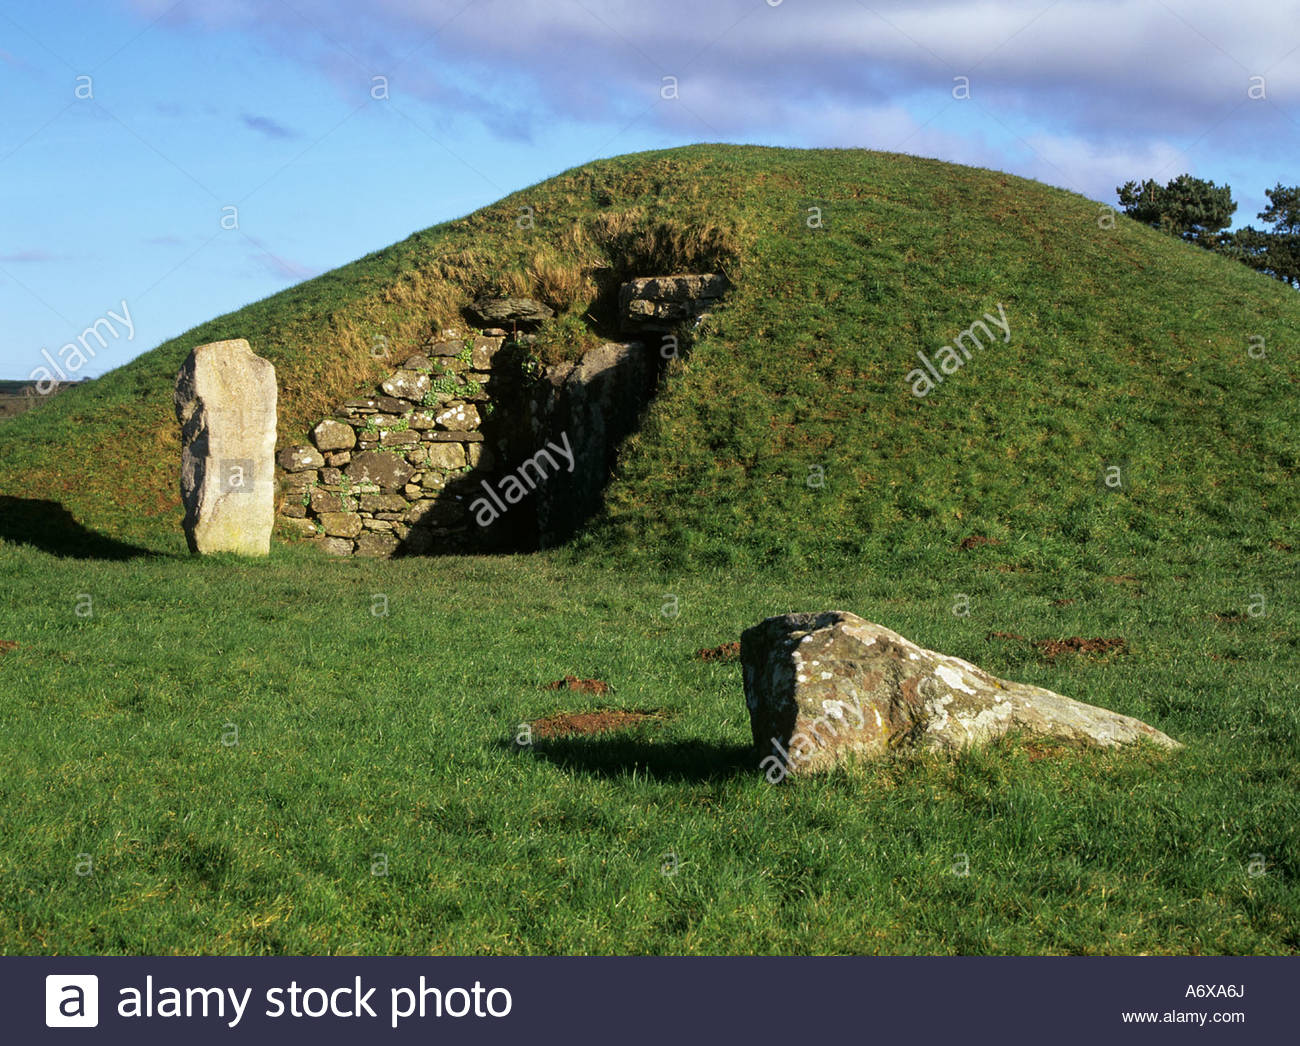 Bryn Celli Ddu North Wales, BRYN CELLI DDU ISLE OF ANGLESEY NORTH WALES UK February Ancient ...